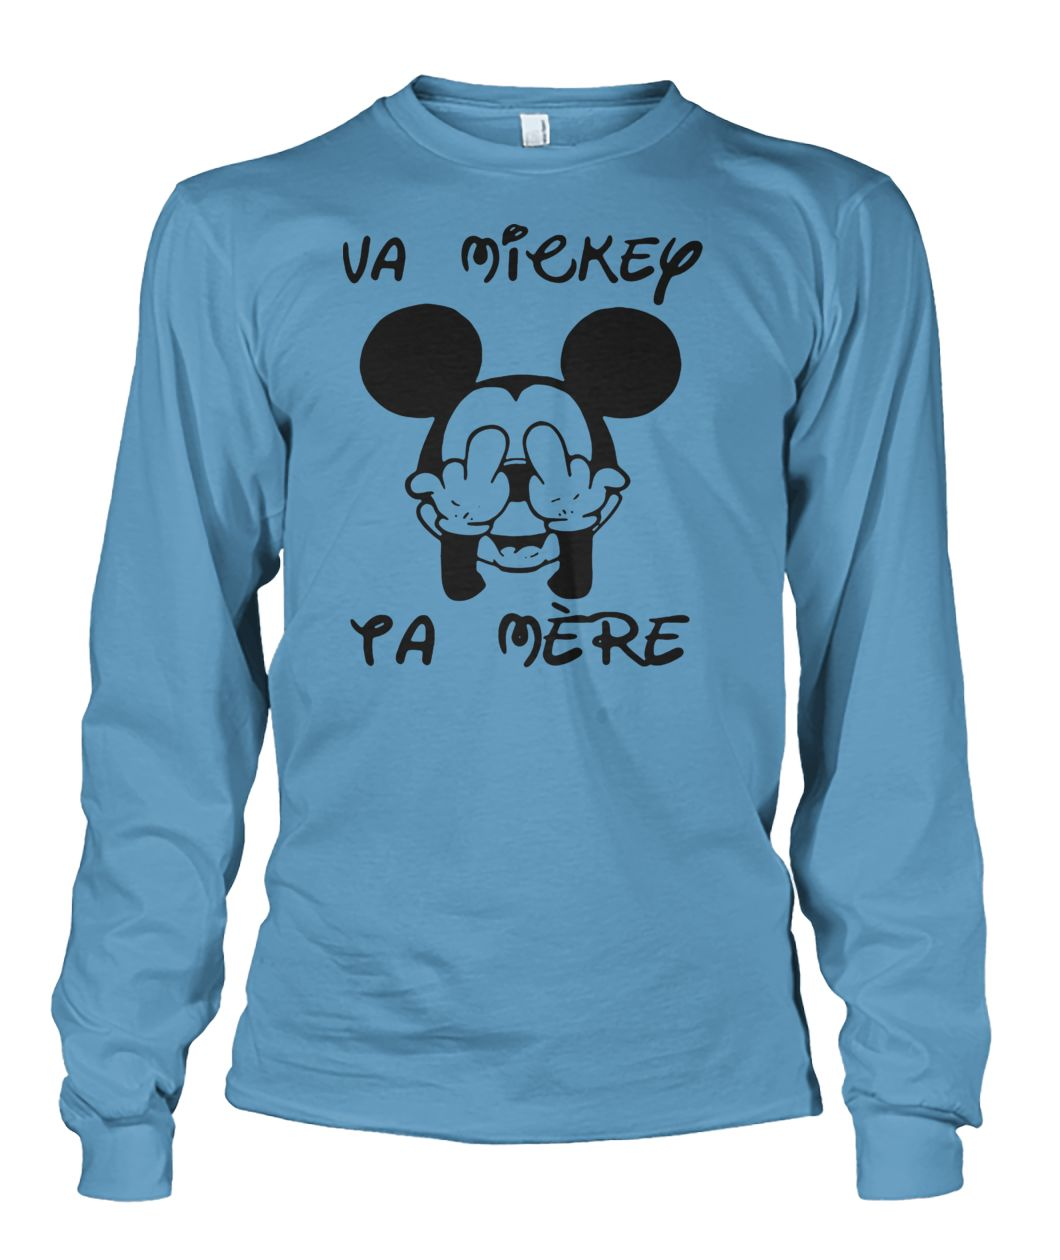 Fucking va mickey ta mere unisex long sleeve